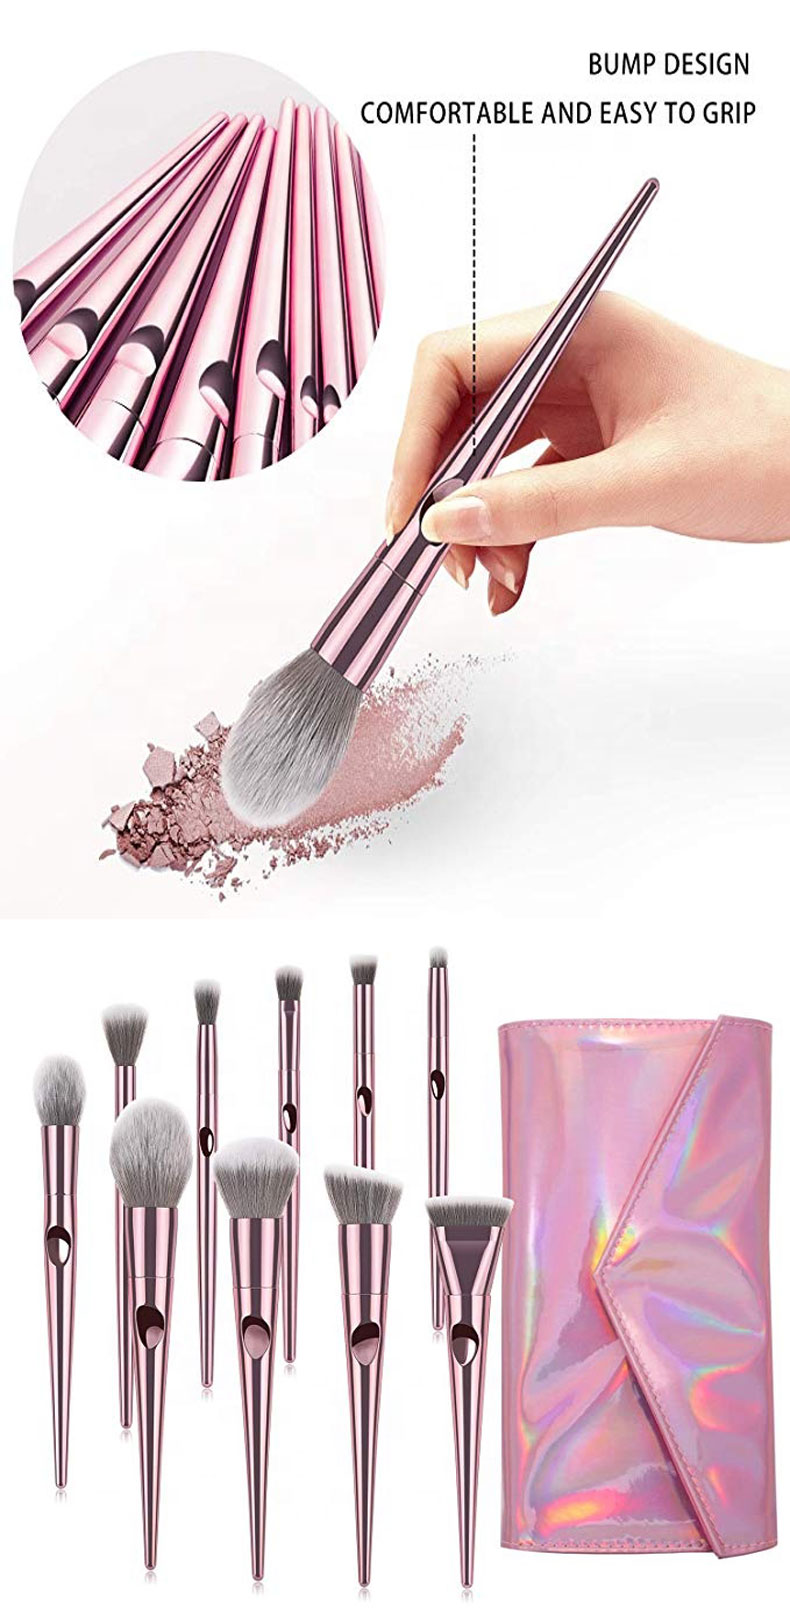 2019 New Products Private Label 10 Pcs Glitter Natural Hair Makeup Brush Set Wholesale